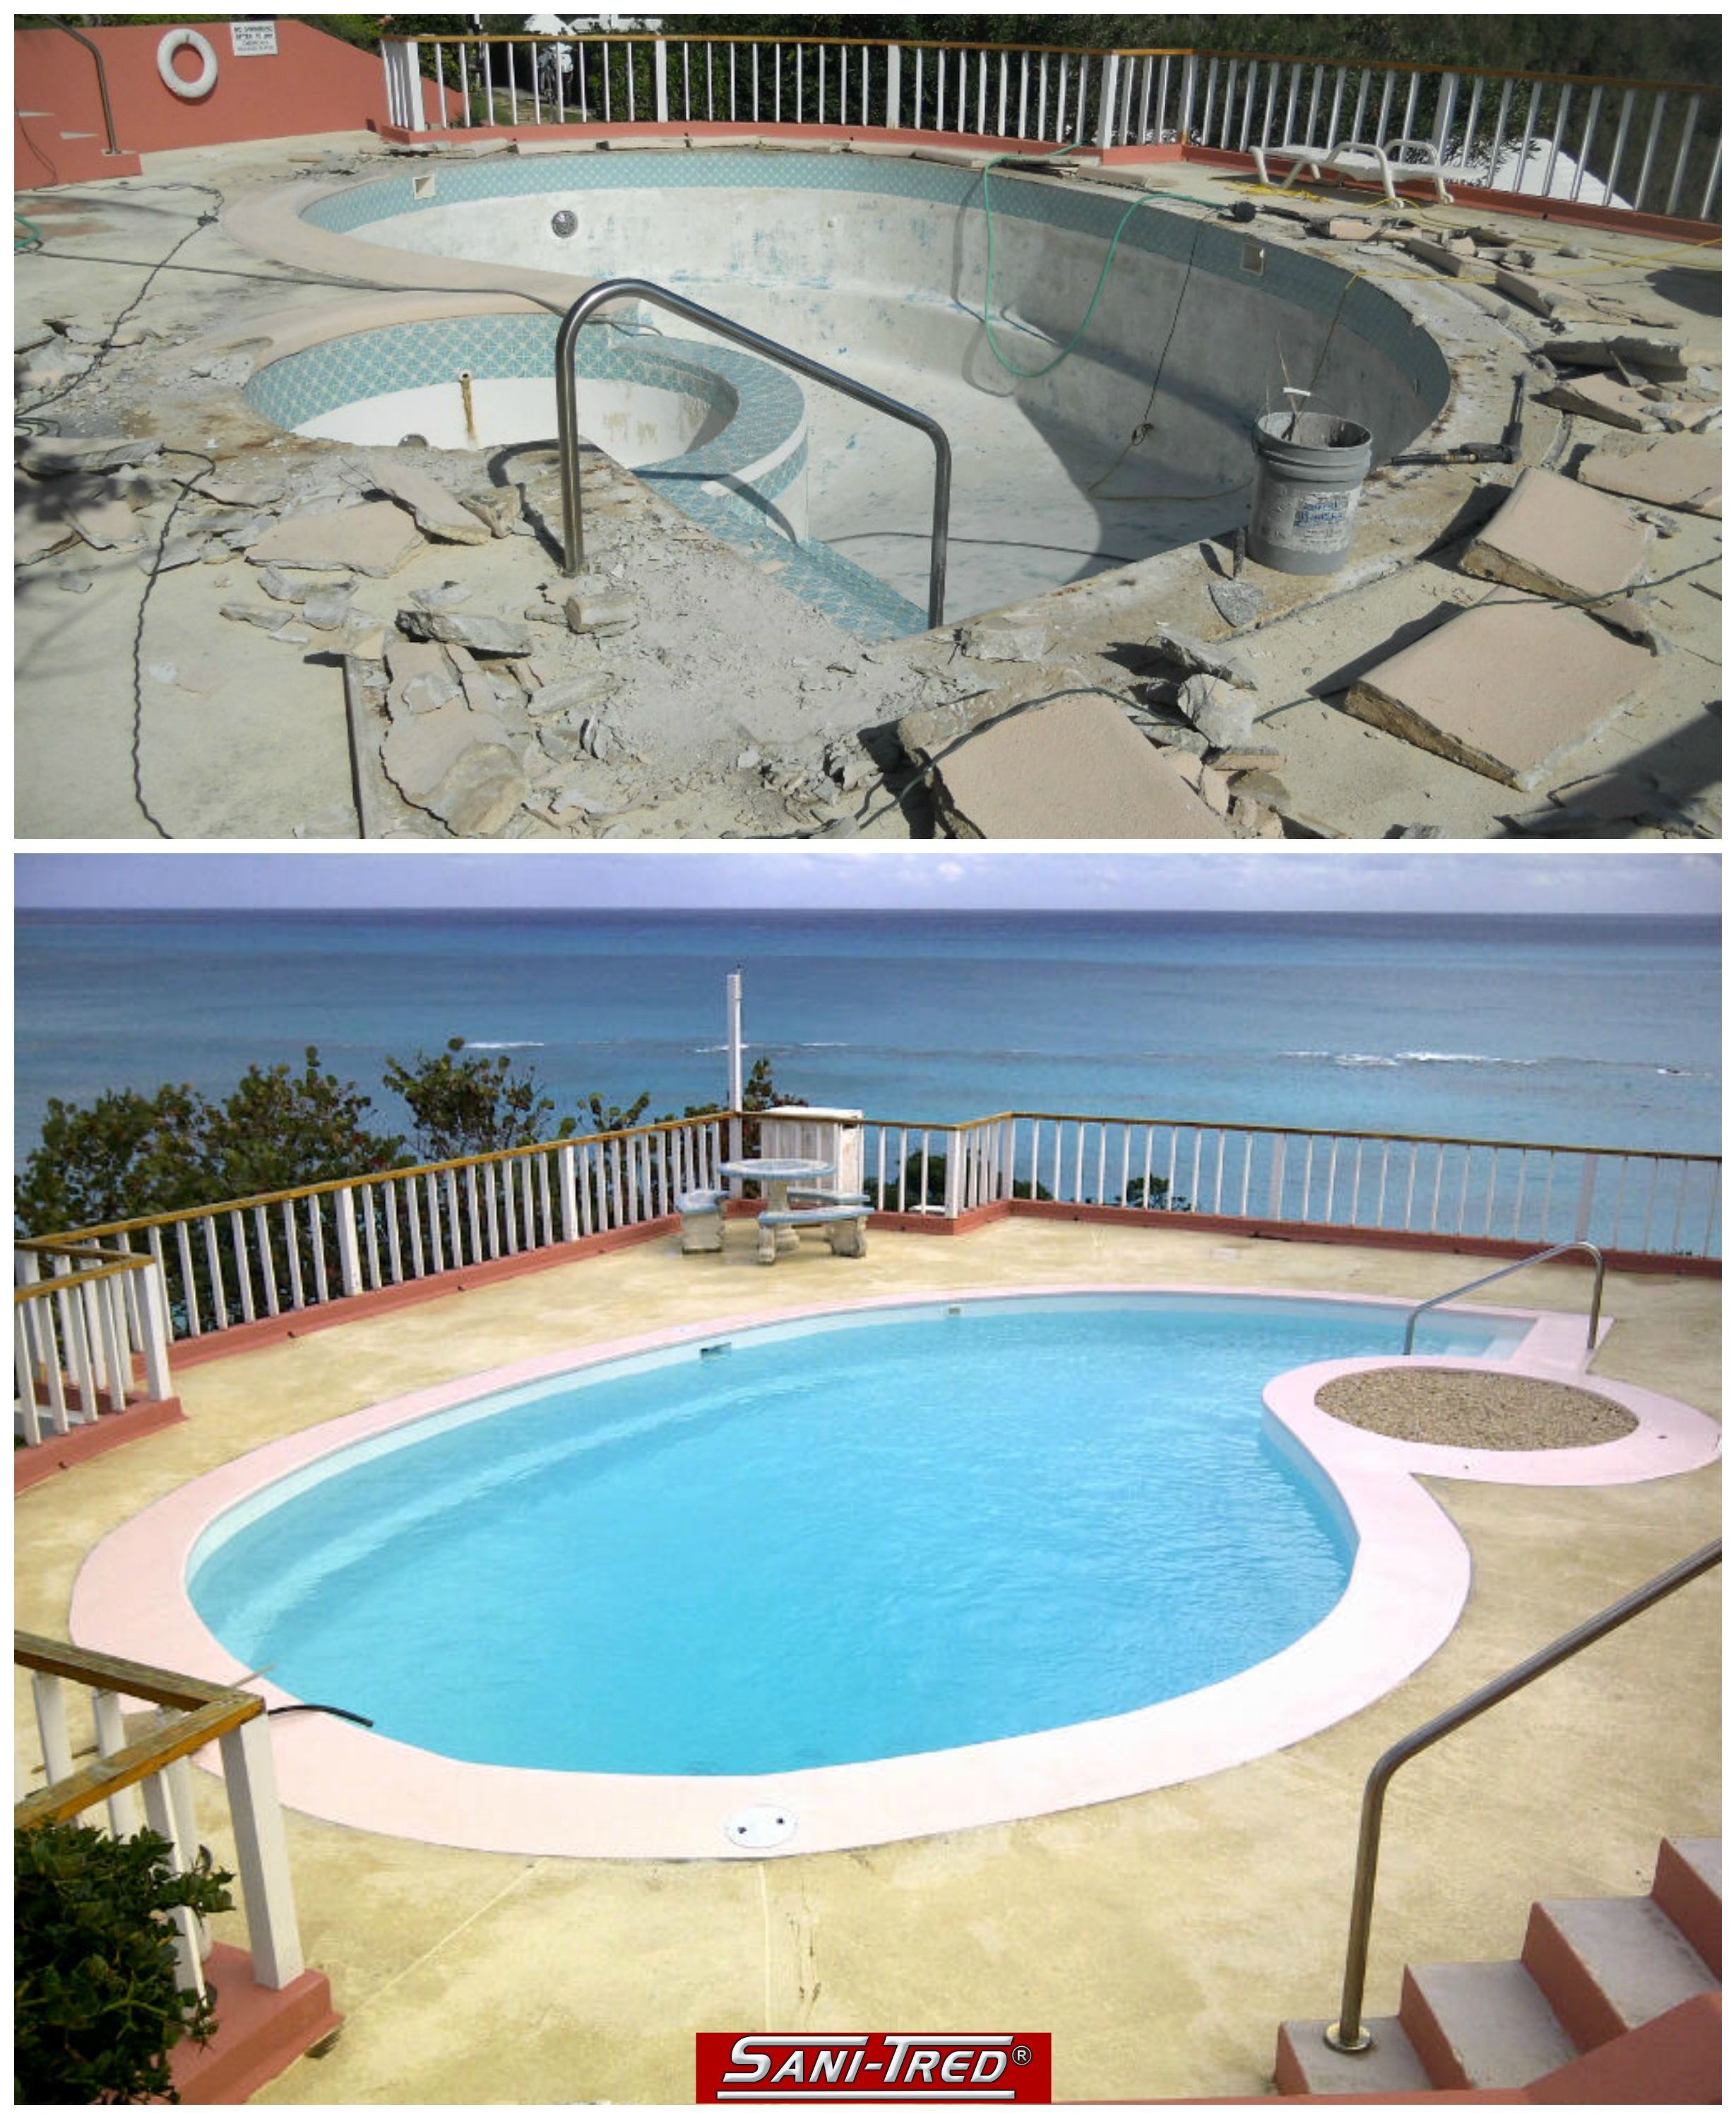 What you can read next swimming pool repair pinterest - Can you swim after putting algaecide in pool ...